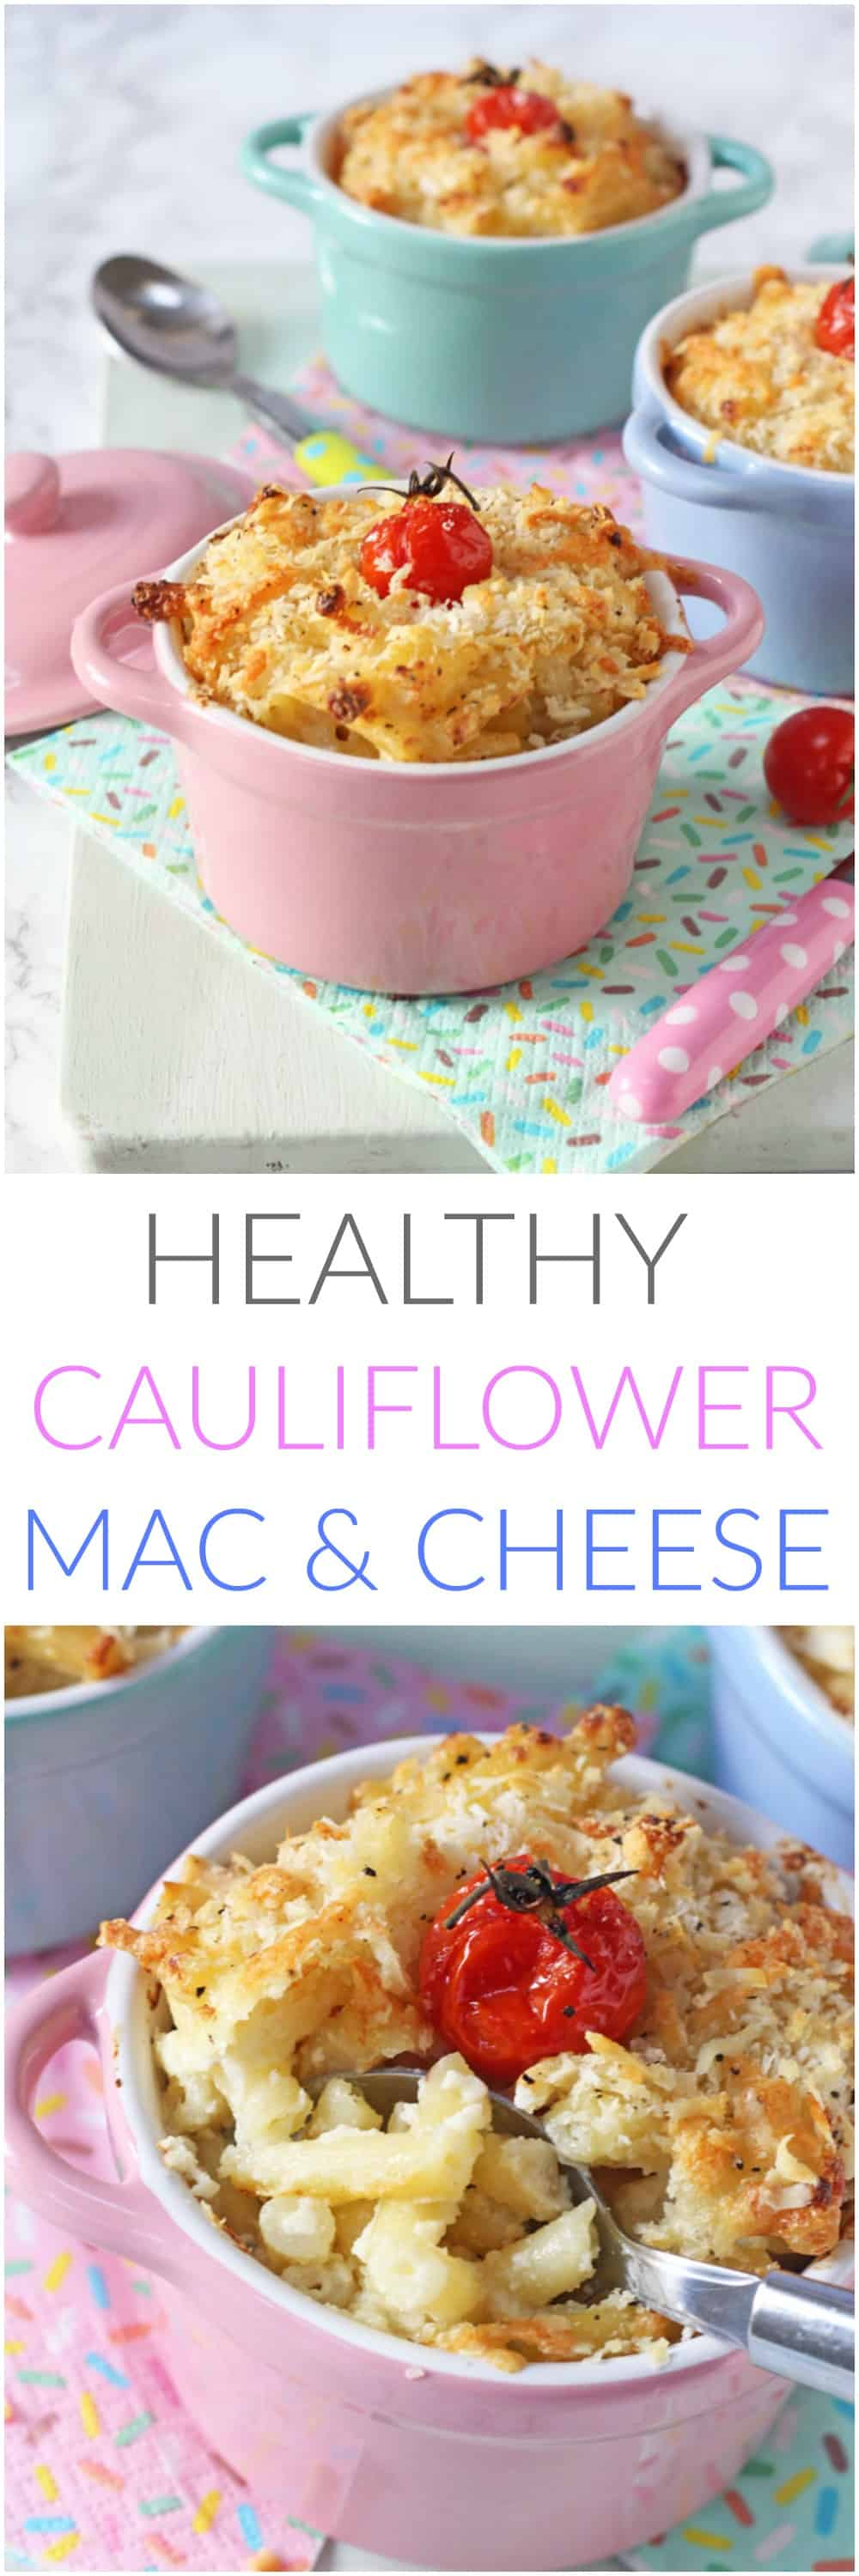 A healthy twist on an old family favourite. This Cauliflower Mac & Cheese is packed with hidden veggies that the kids can't see or taste!